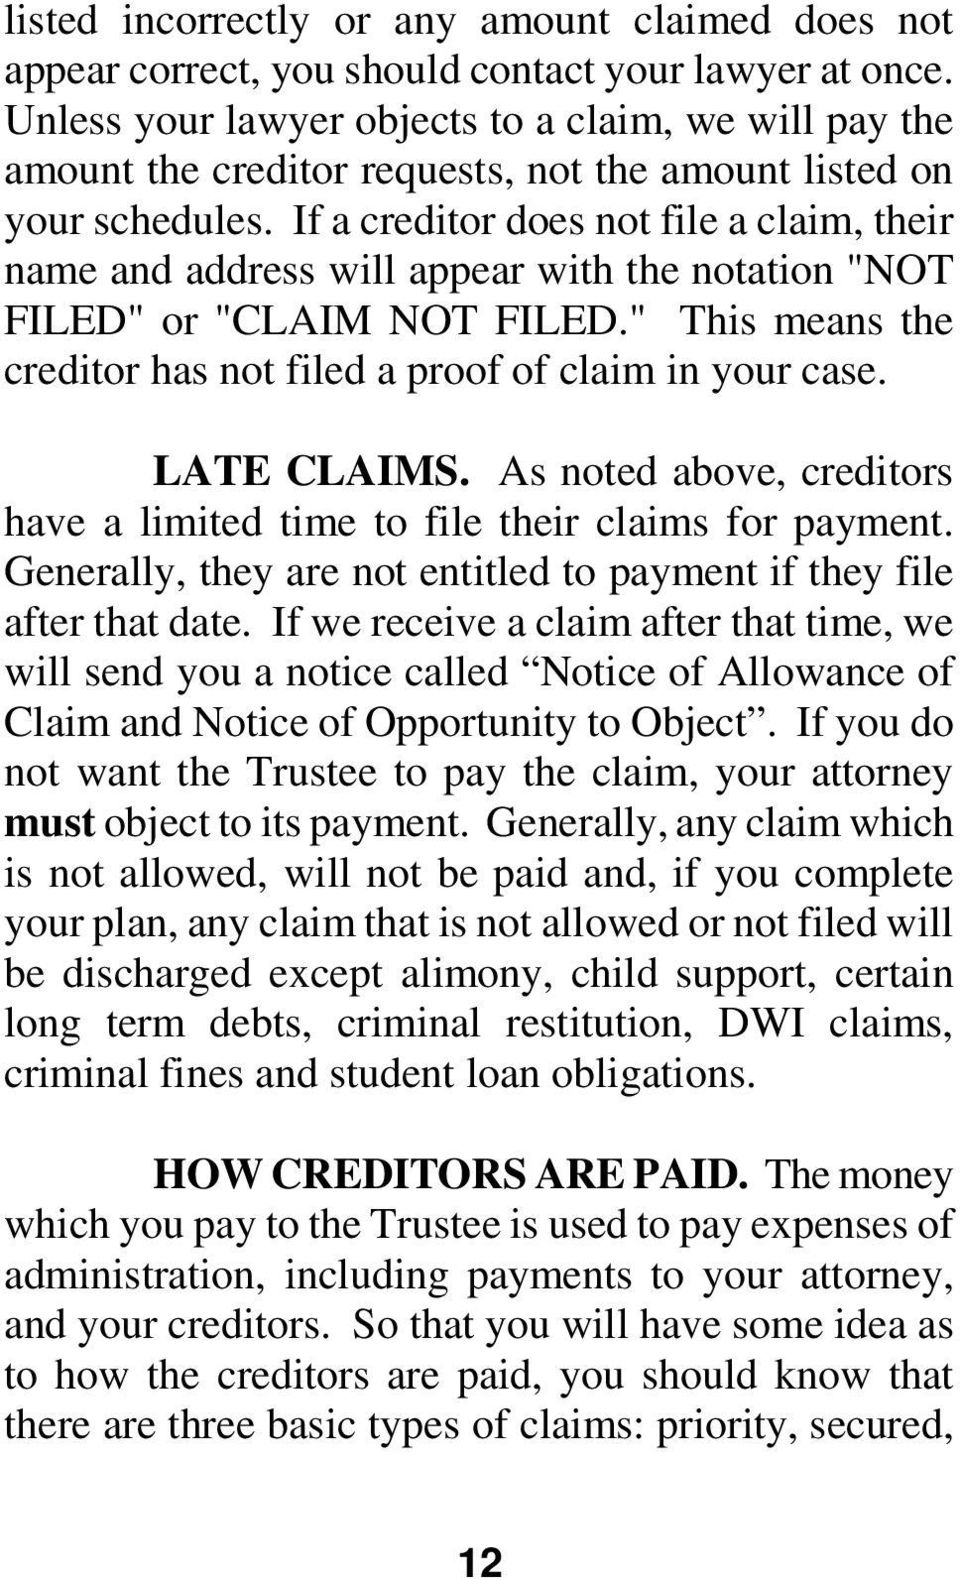 "If a creditor does not file a claim, their name and address will appear with the notation ""NOT FILED"" or ""CLAIM NOT FILED."" This means the creditor has not filed a proof of claim in your case."